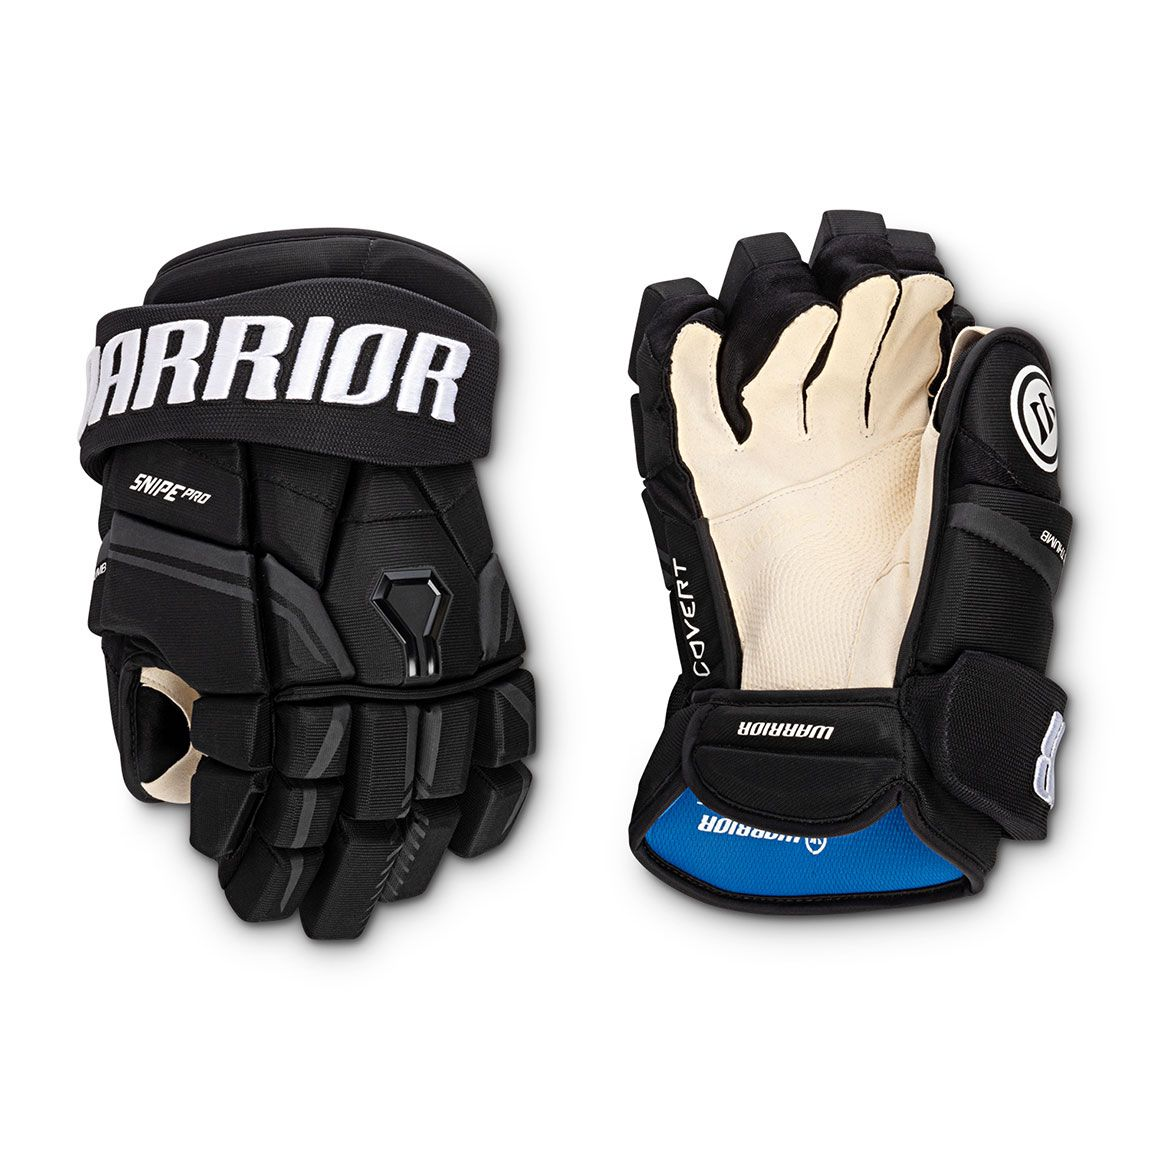 GLOVE JR WARRIOR SNIPE PRO S20